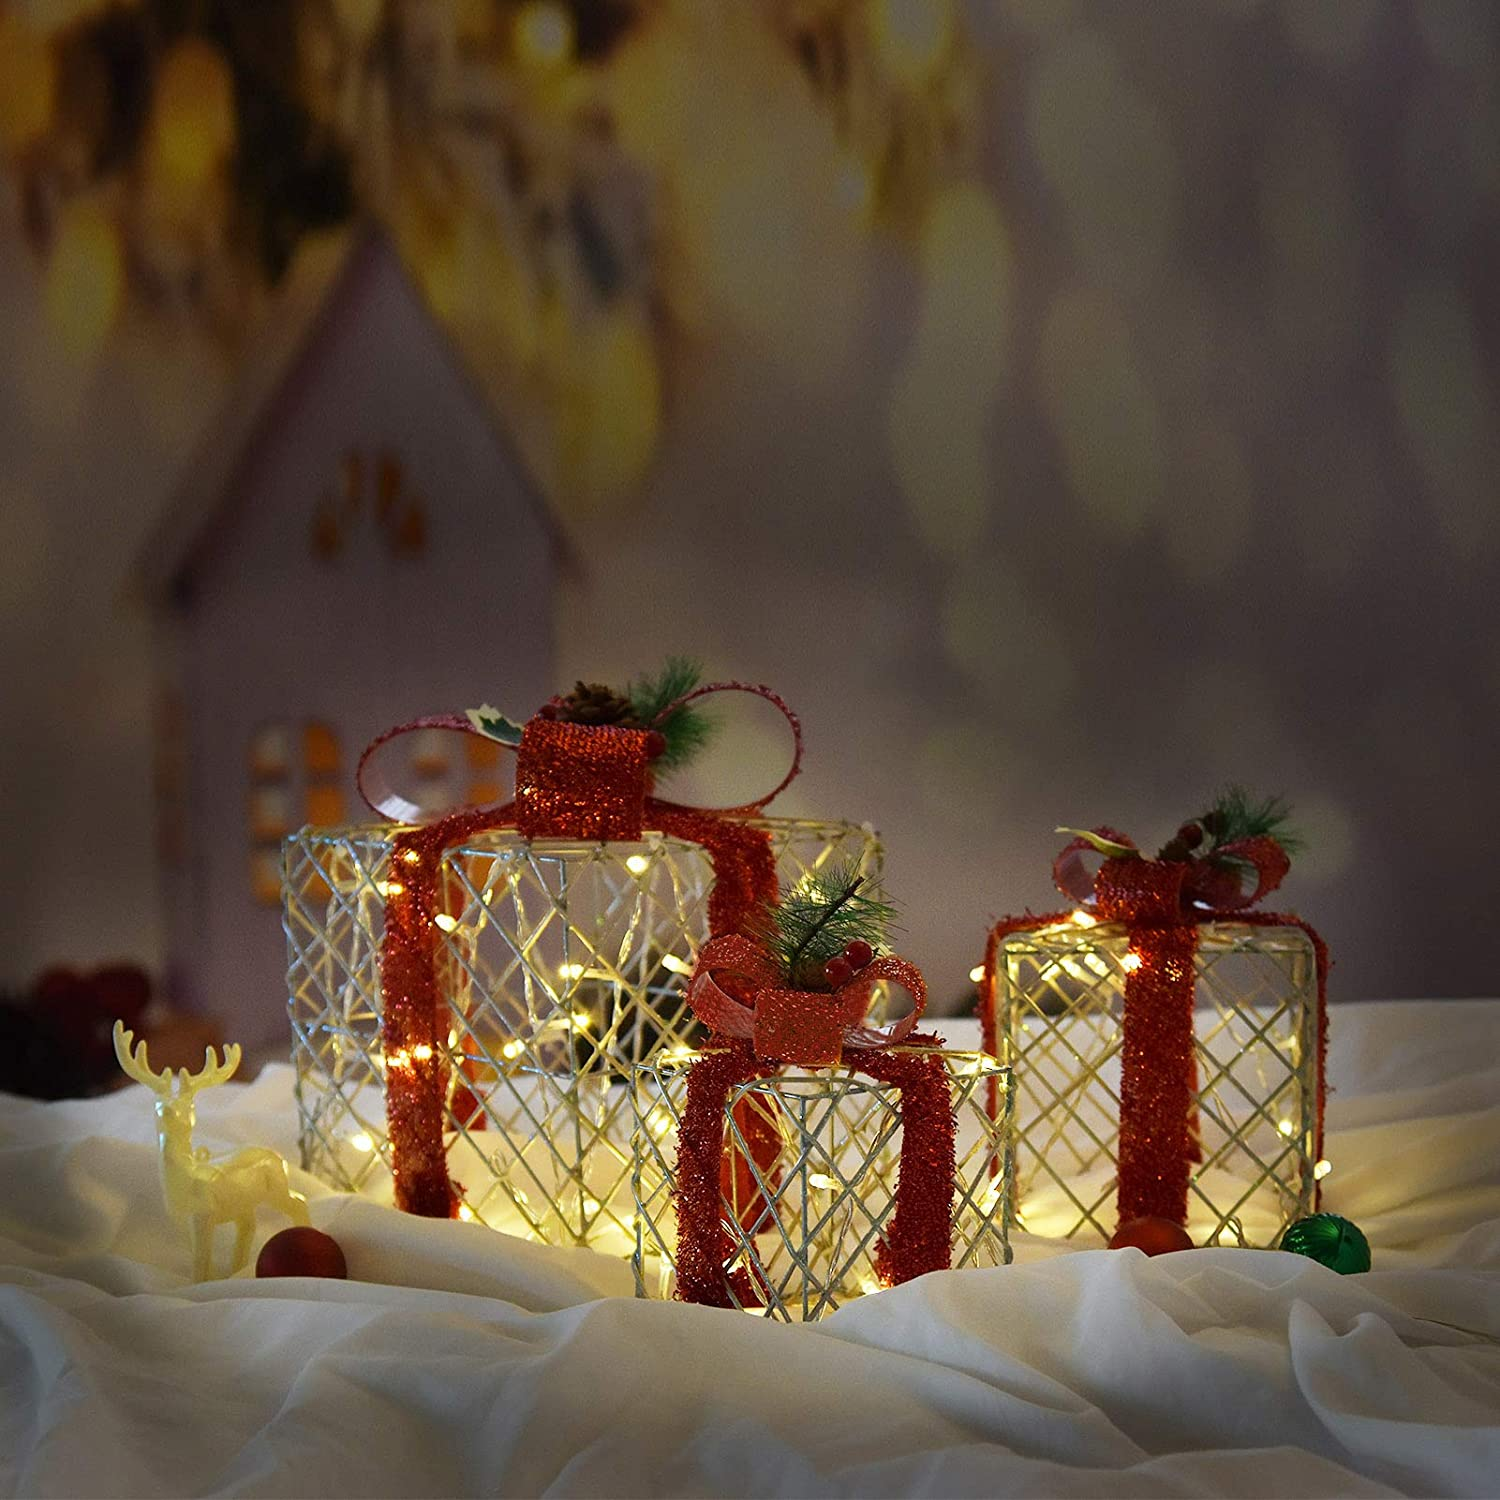 Set of 3 Christmas Lighted Gift Boxes Decorations with 48 Lights, Small Medium and Large Present Boxes for Indoor and Outdoor Yard/Lawn Use(Twisted Vines)